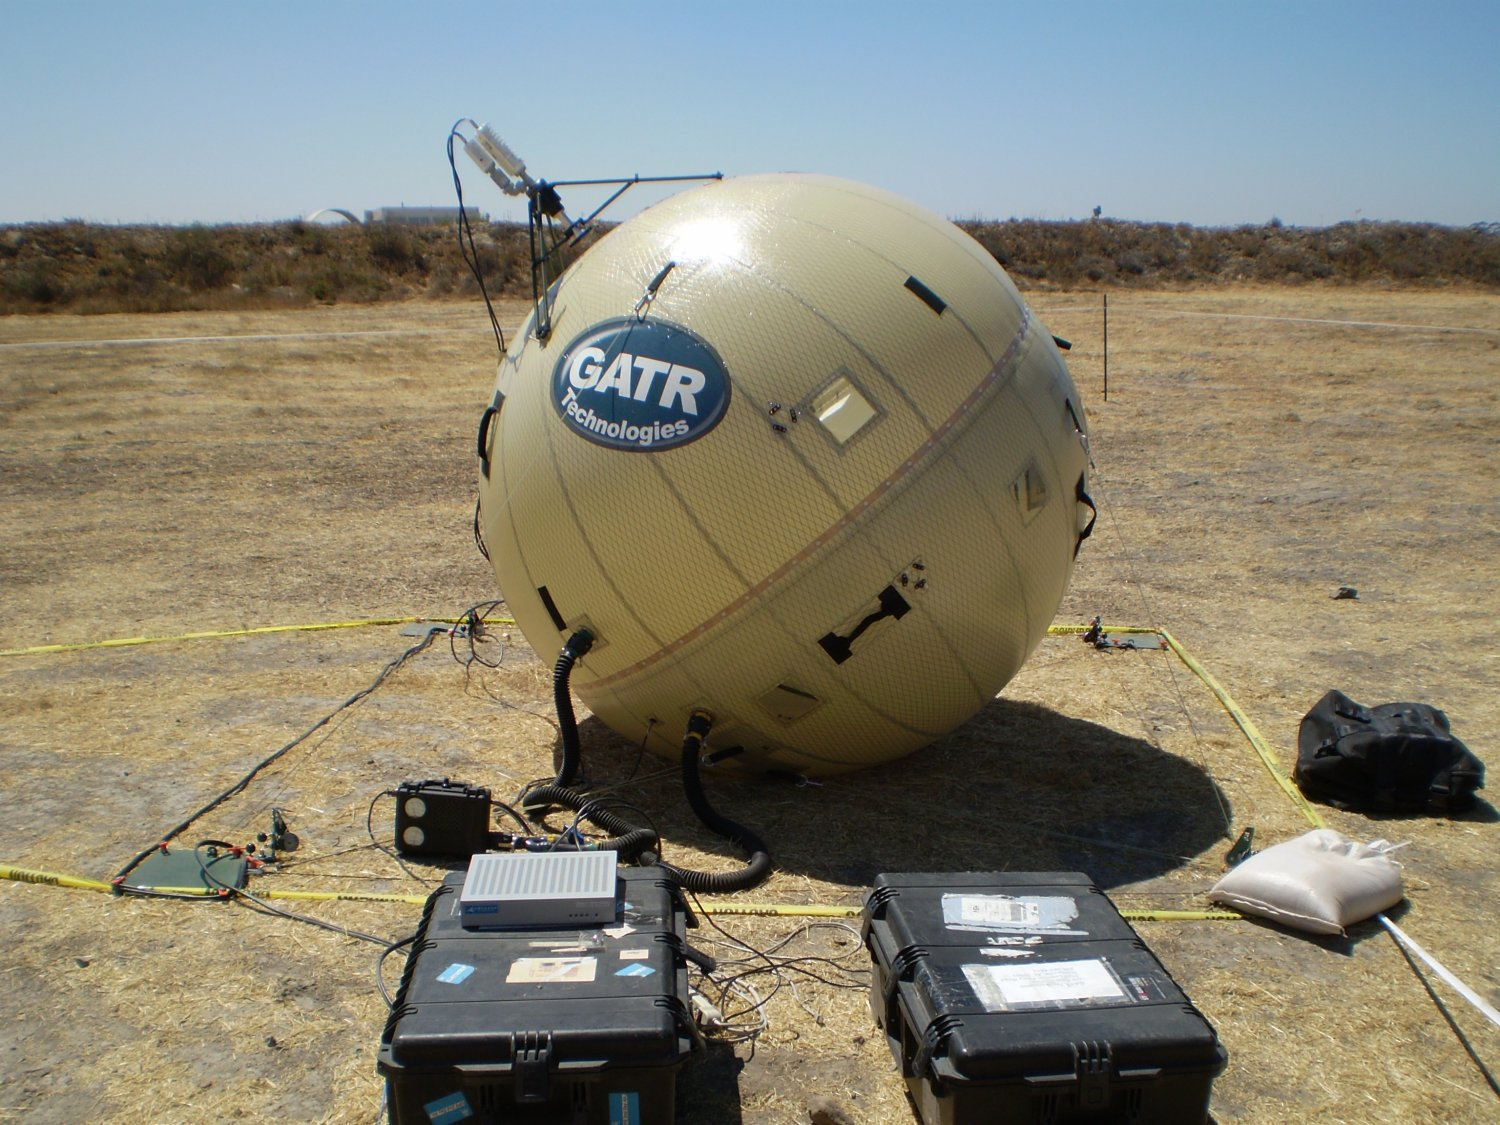 GATR 2.4m Beach Ball SATCOM 4 small <!  :en  >GATR Technologies Ultra Transportable Beach Ball Style C band Inflatable Satellite Communications (SATCOM) Antenna Systems: Tactical Communications for Military Special Operations (SPECOPS) in Adverse Conditions<!  :  >